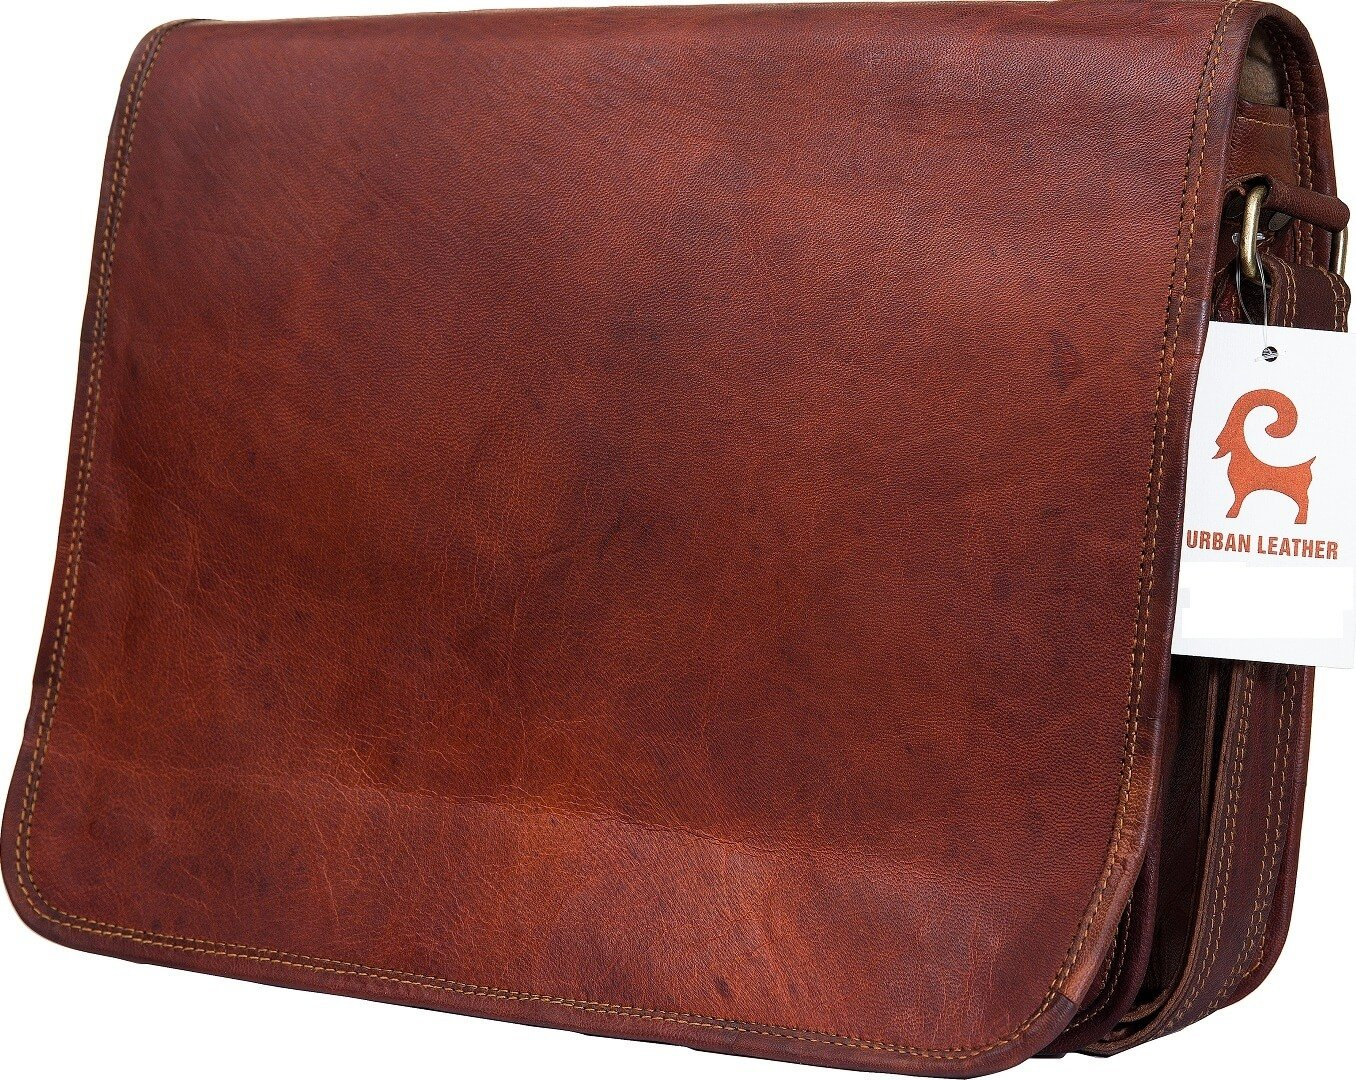 Urban Leather Handmade Over The Shoulder Laptop Bag for Men Women Boys Girls, With Shock Proof Macbook Padding, Size 15 inch